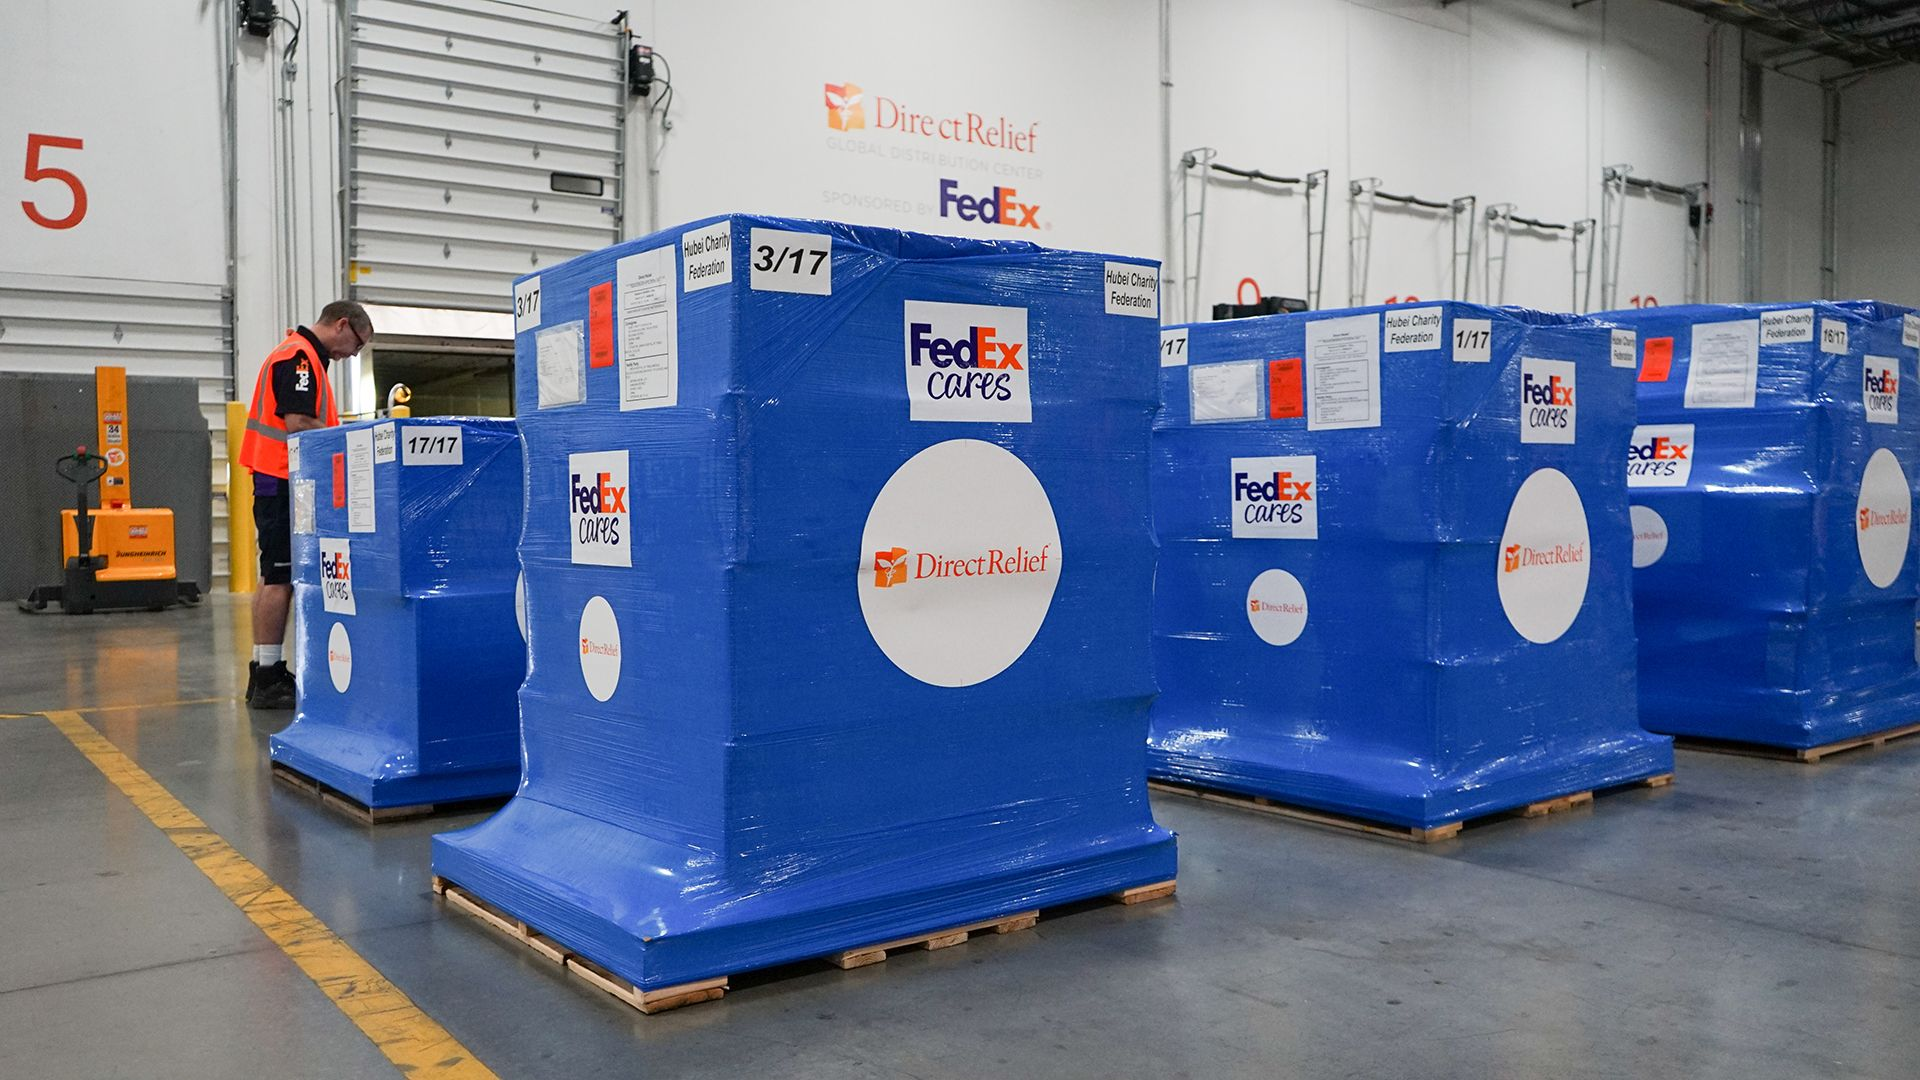 FedEx Air & Ground Supports Direct Relief